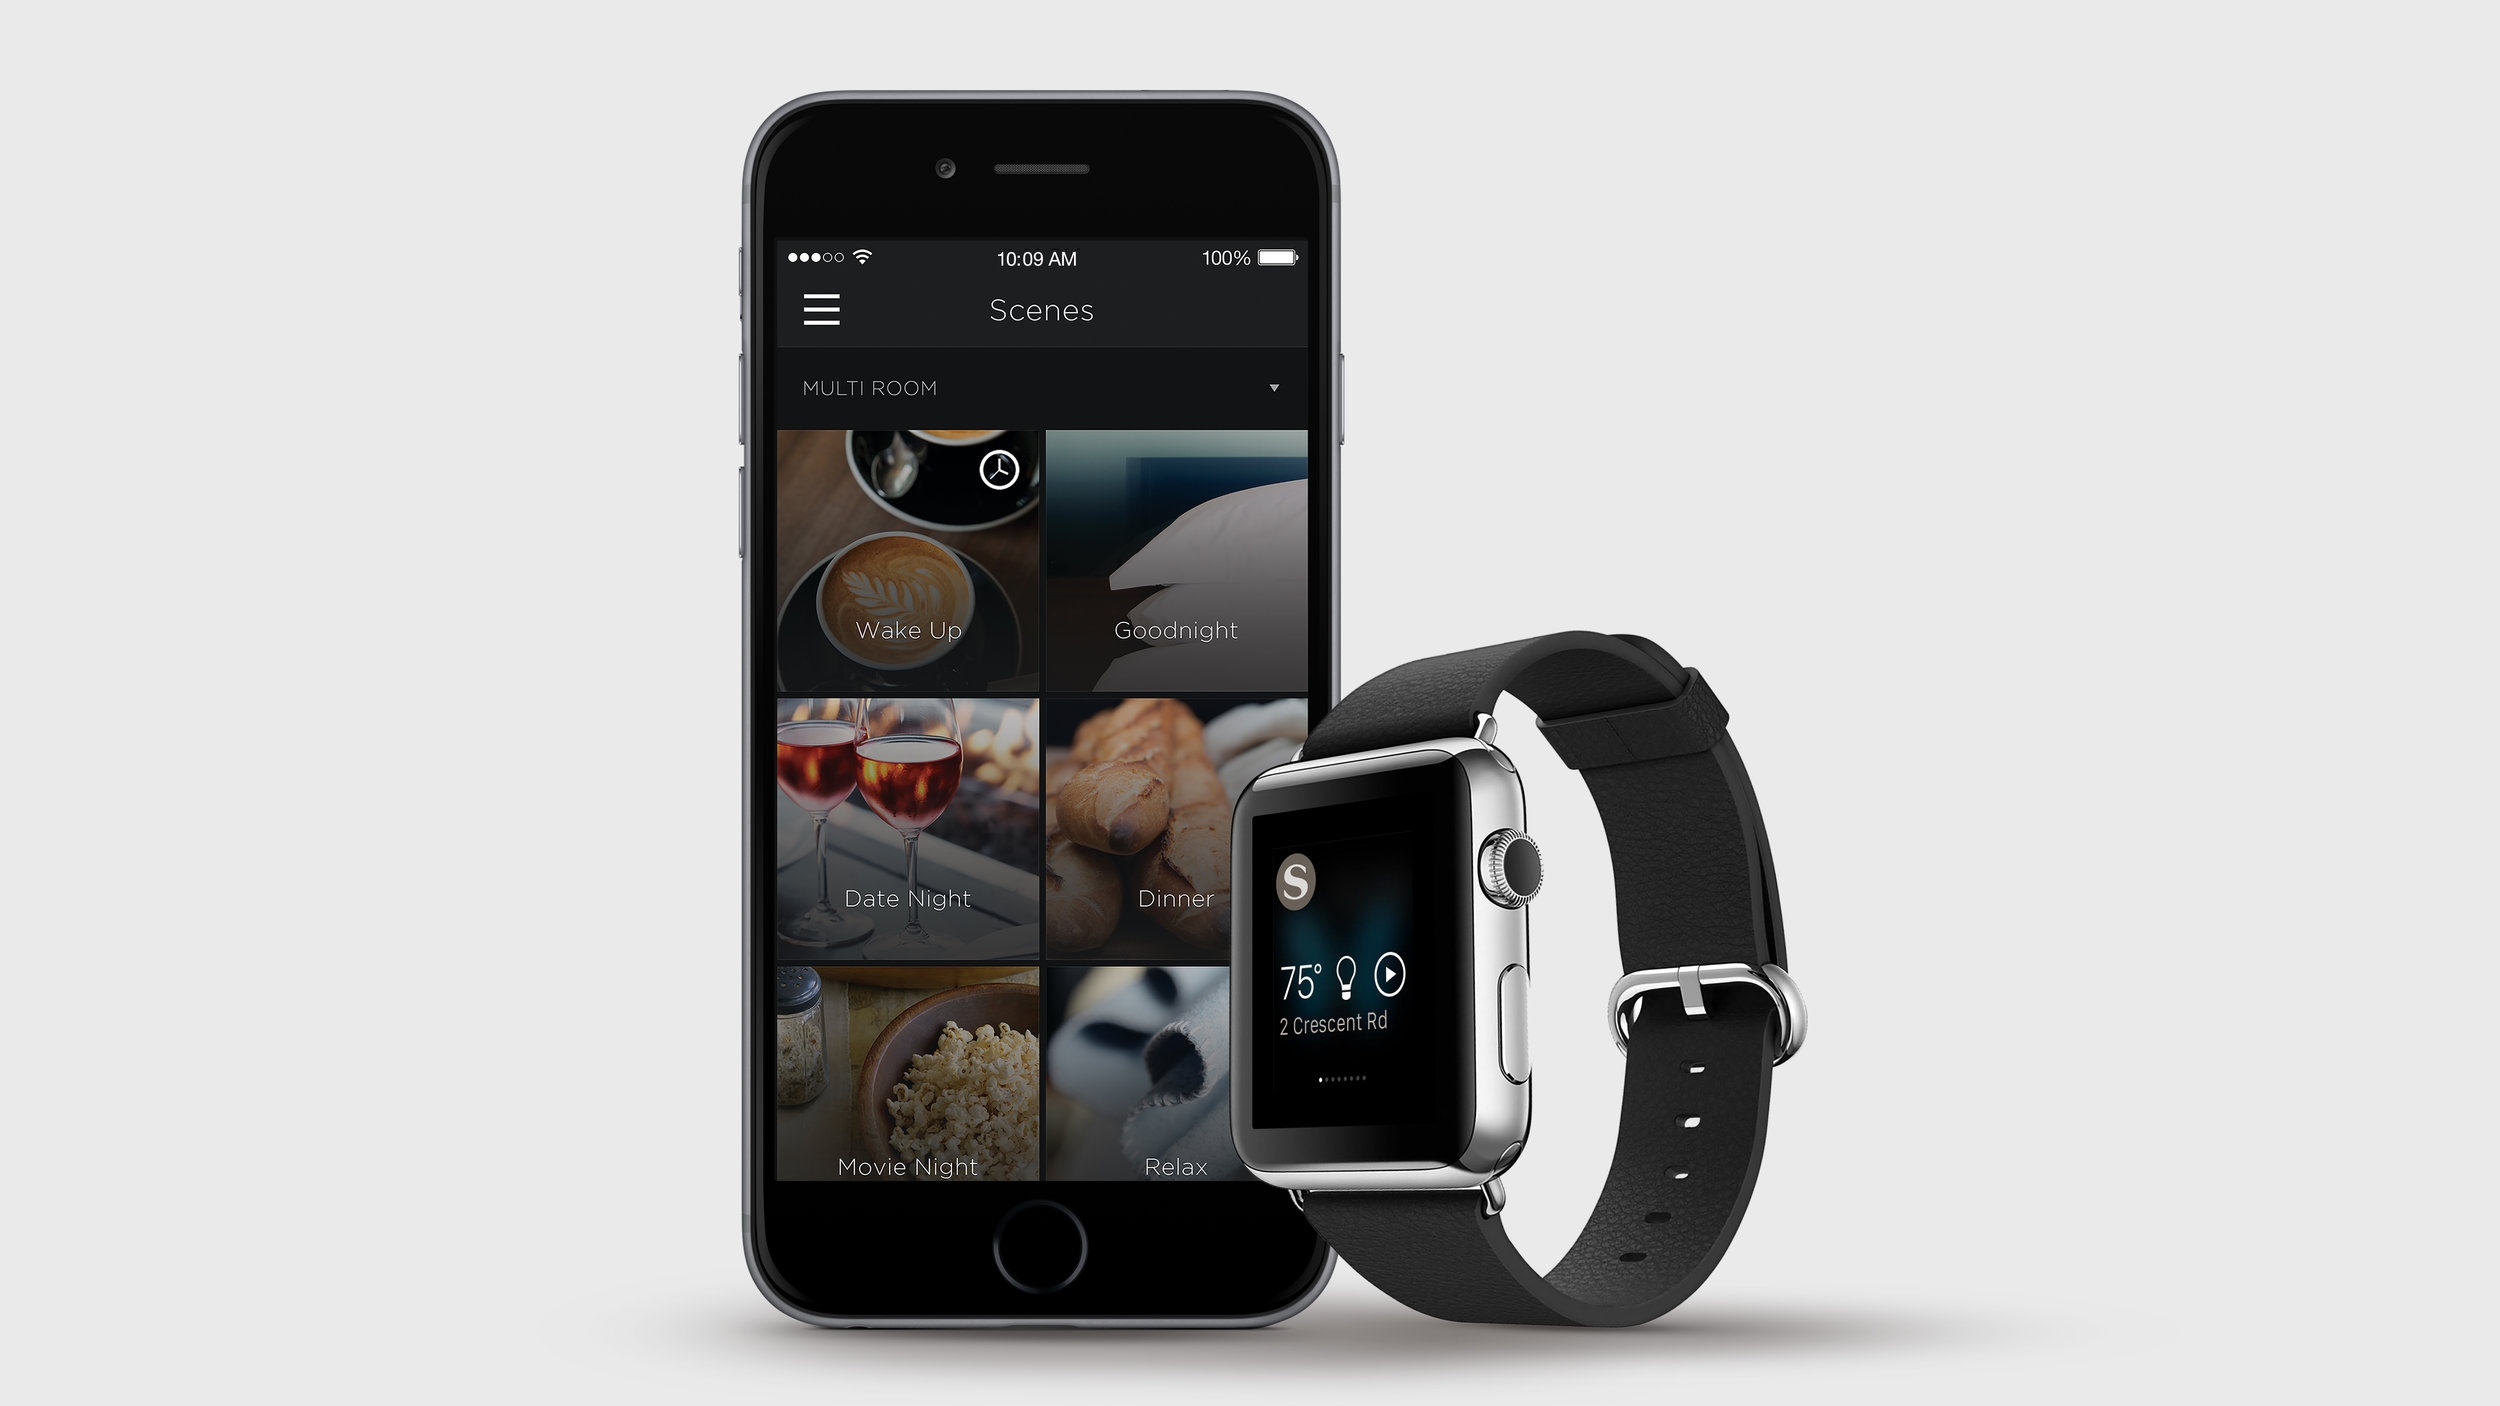 Apple Watch Press Images-Crop-Scenes-Glance.jpg